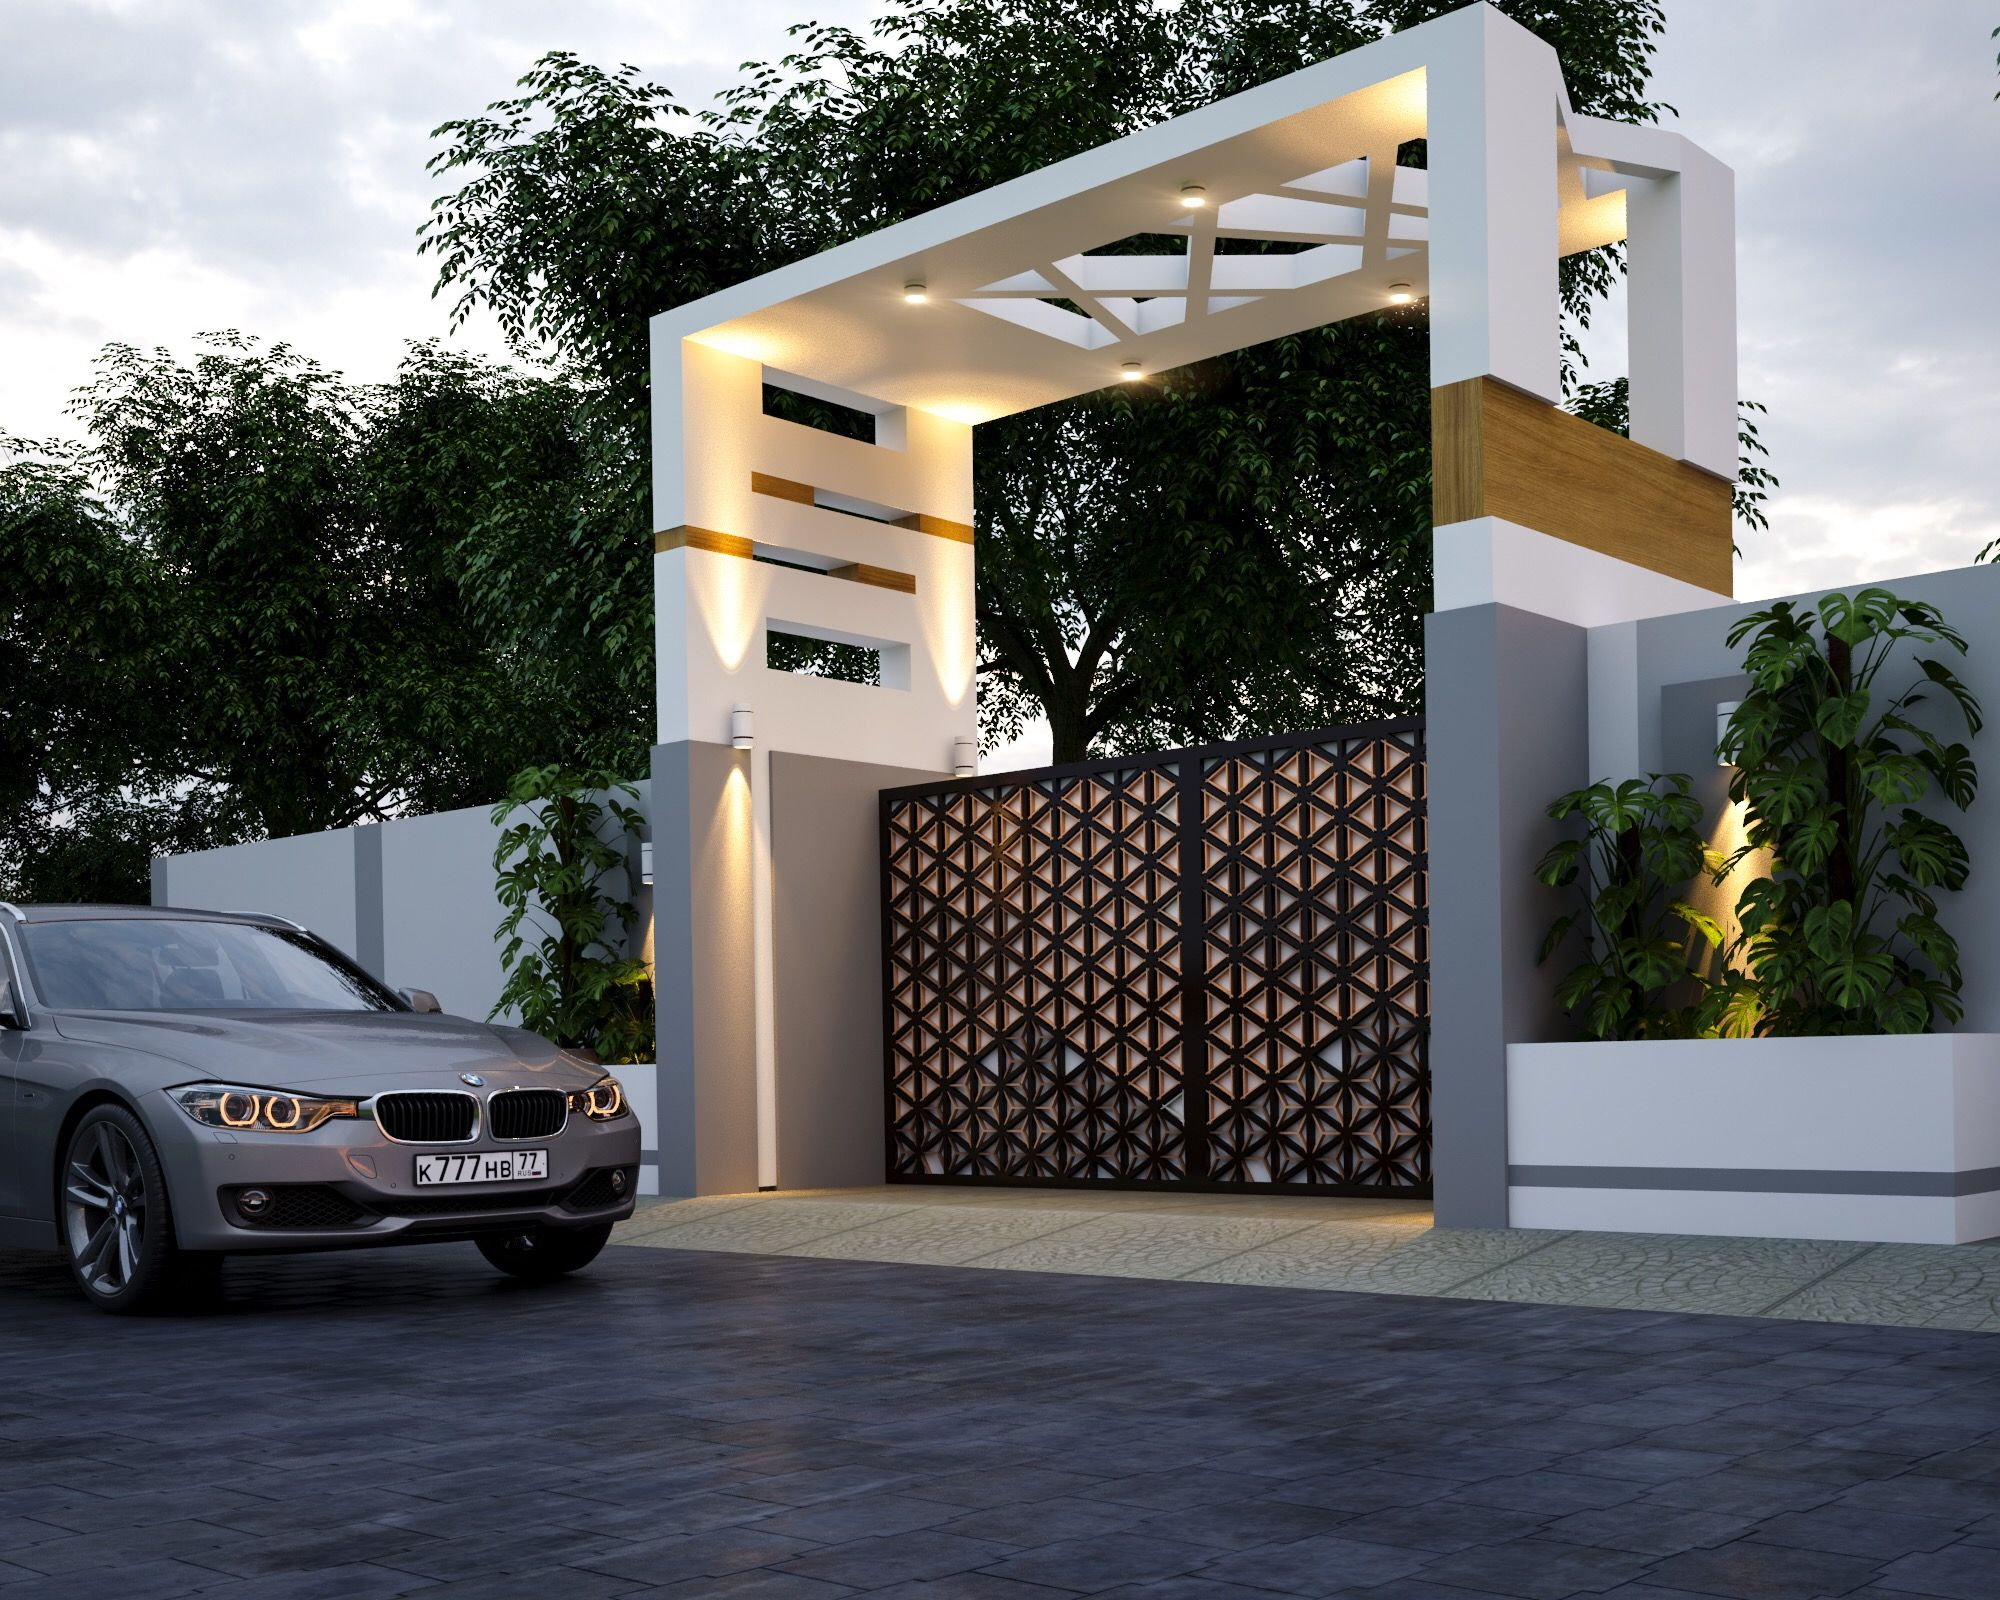 Gate Entry By Egmdesigns House Gate Design Front Gate Design Entrance Gates Design